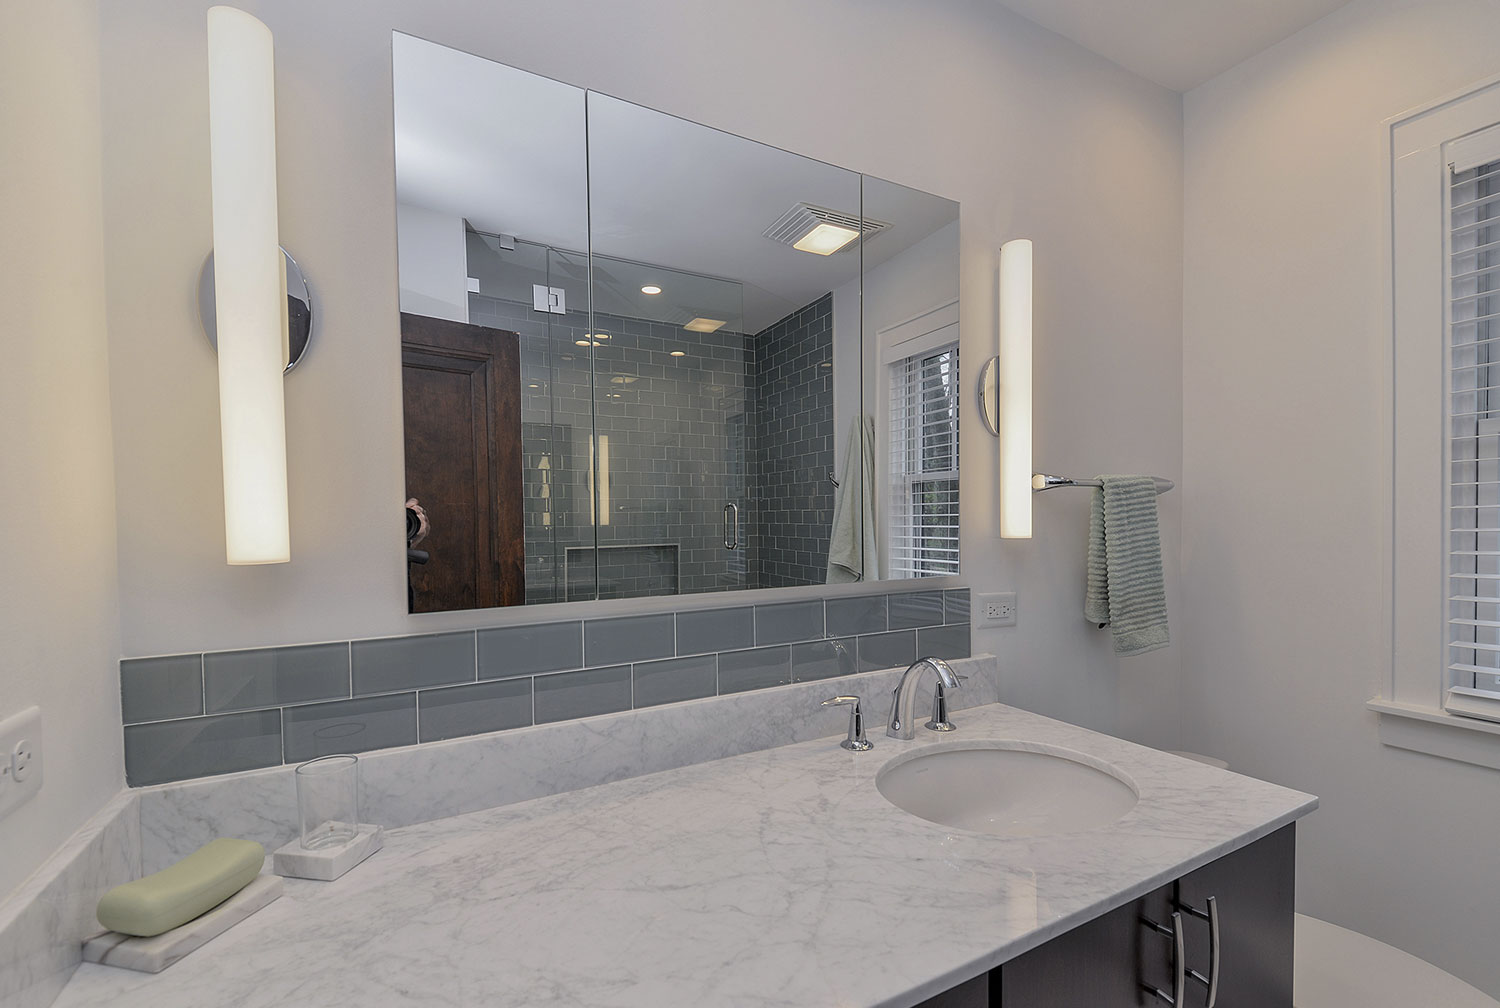 Bathroom Remodeling Service 28 Images Bathroom: bathroom remodeling services